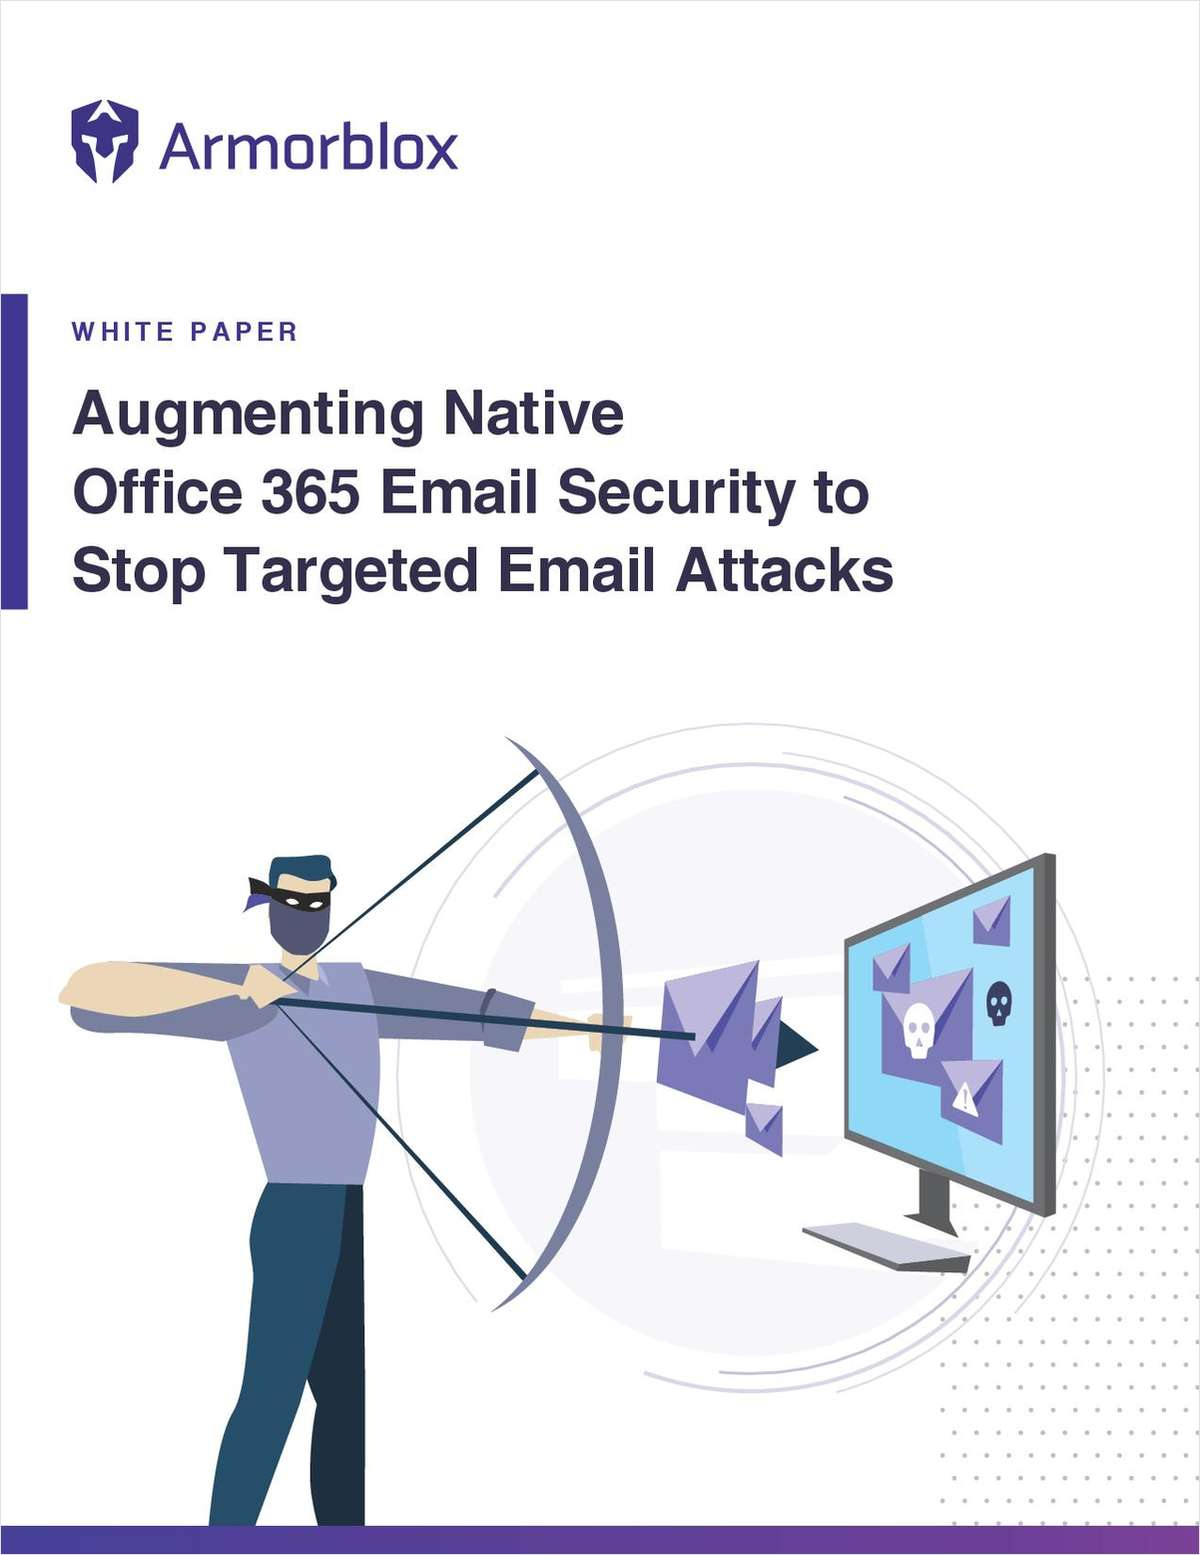 Augmenting Native Office 365 Email Security to Stop Targeted Email Attacks